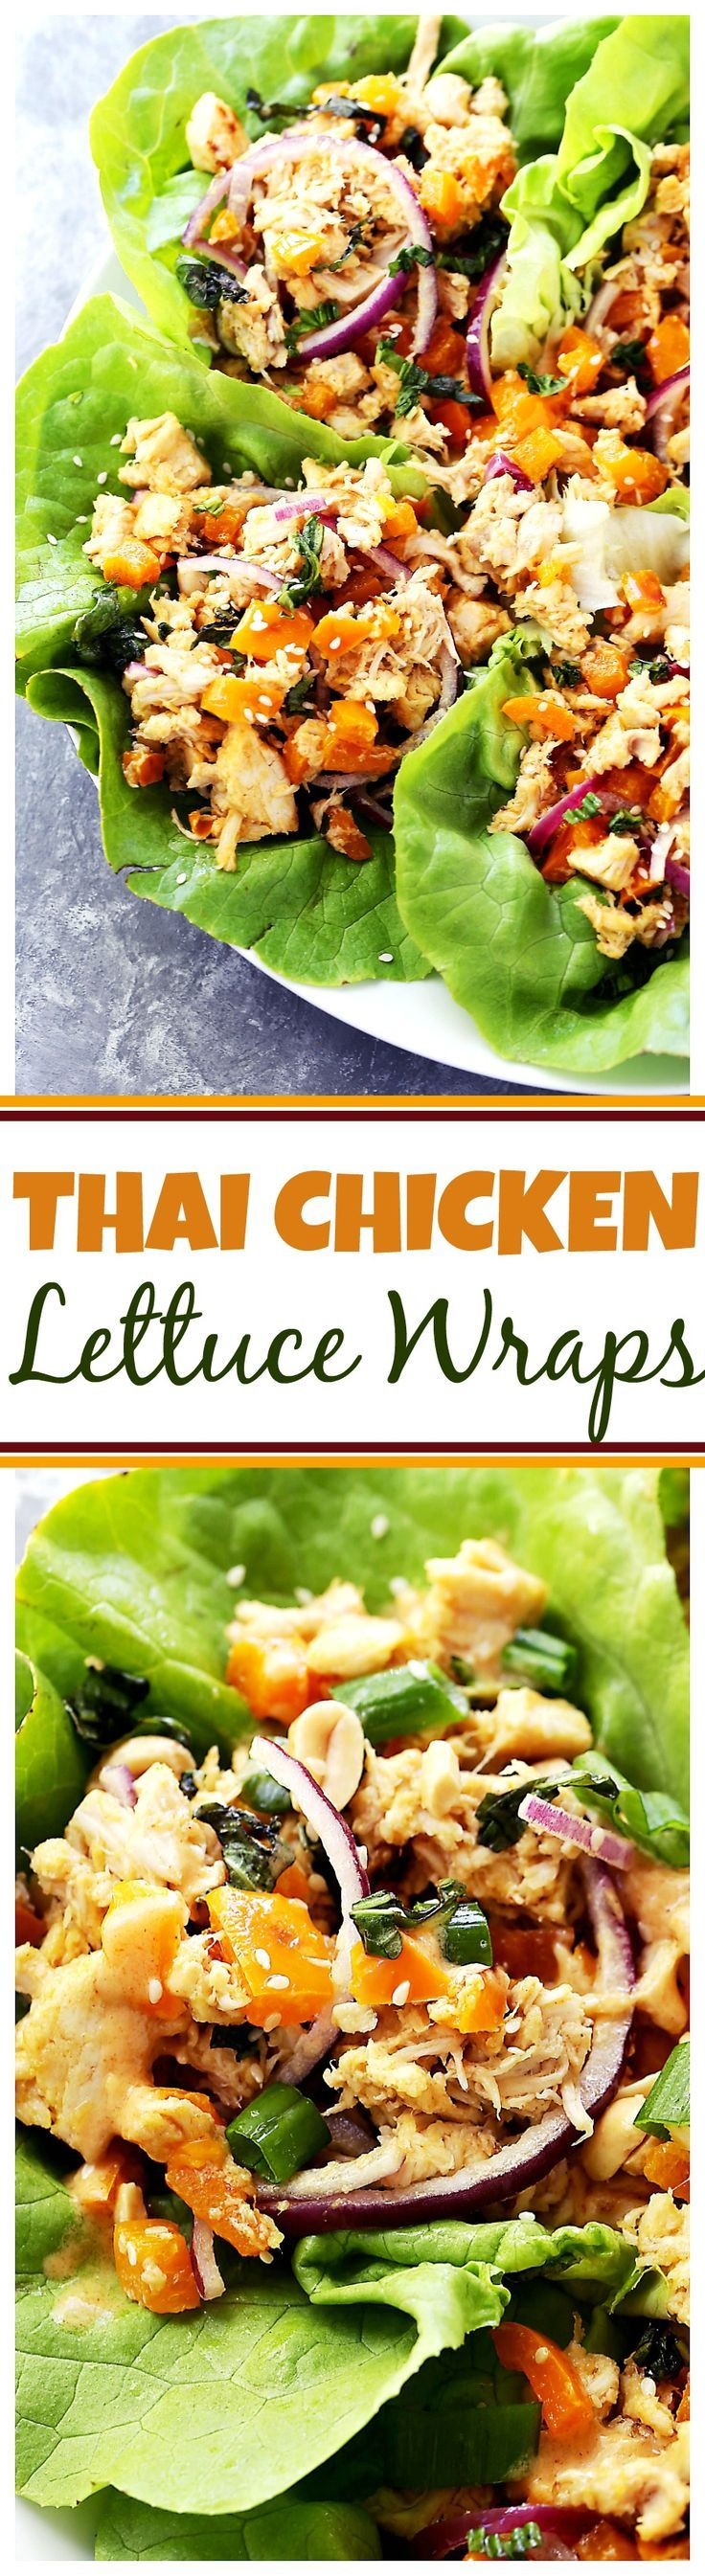 Thai Chicken Lettuce Wraps - Quick and easy Chicken Lettuce Wraps tossed in an incredible Peanut Sauce make for a great weeknight meal option that's full of flavor!  #BePicky #FeedFeed: